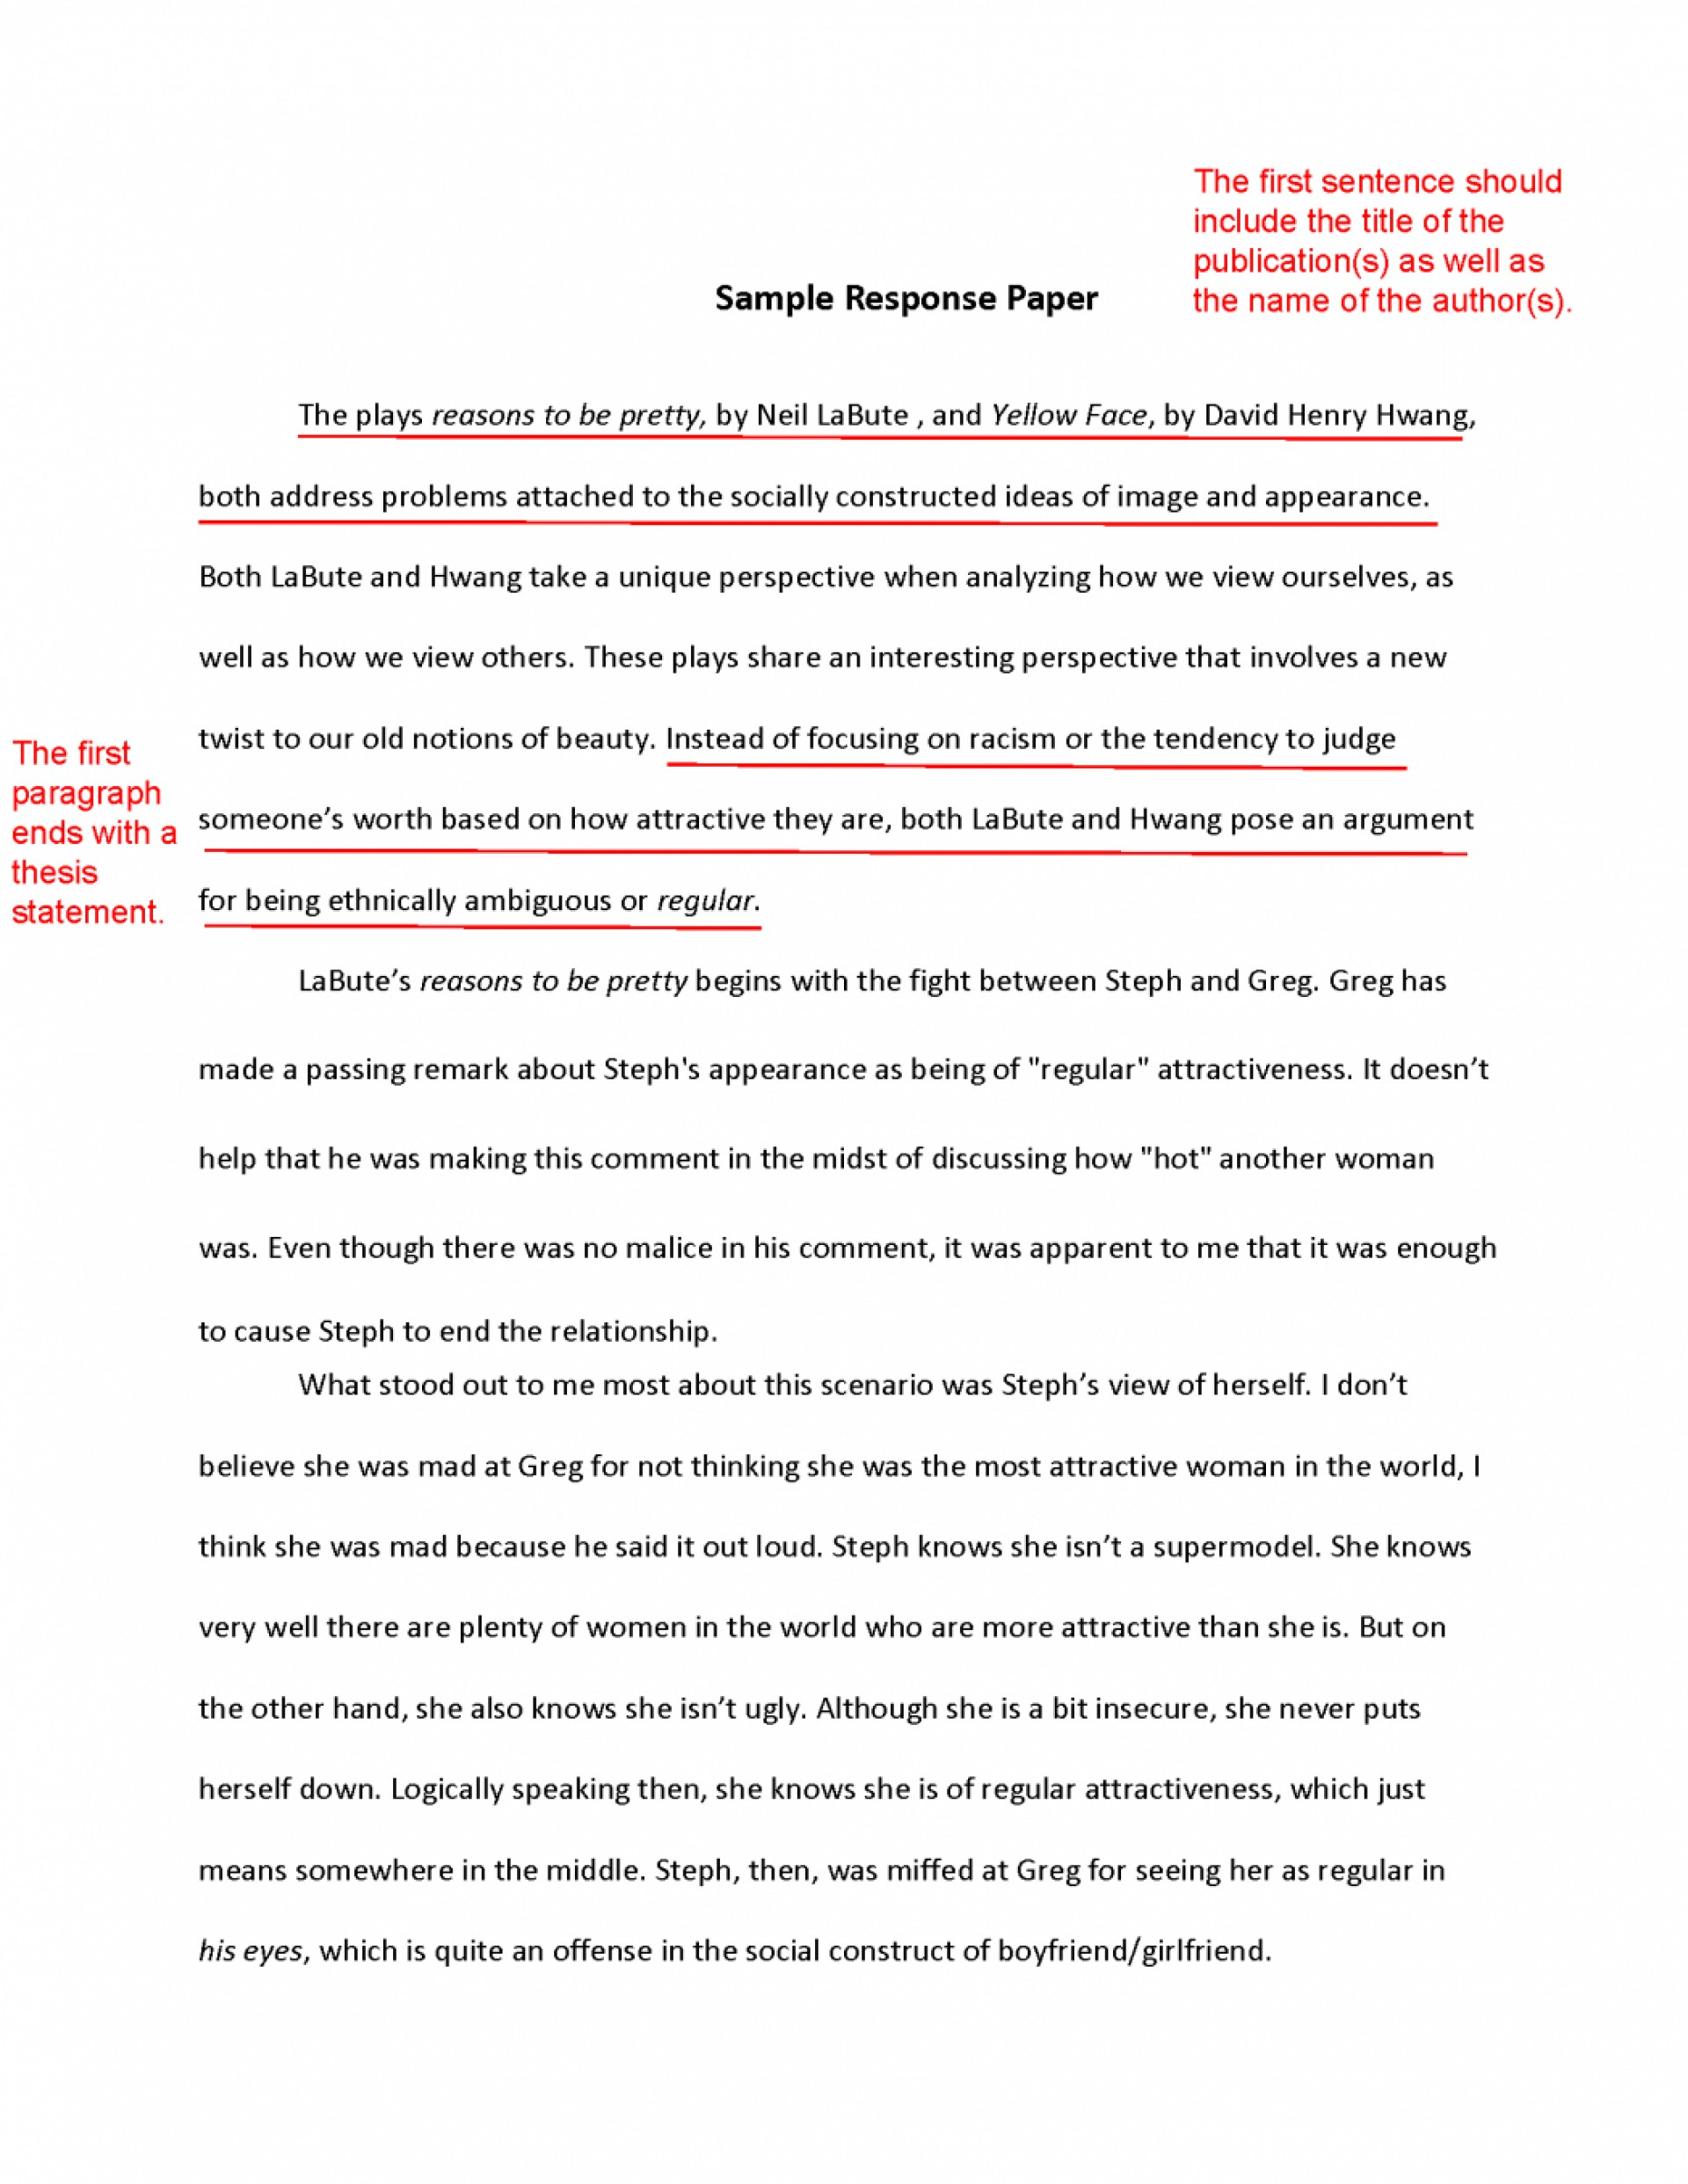 019 Informative Essay Thesis Topics For Synthesis Responces 1048x1356 Unusual Template How To Write An Statement 1920